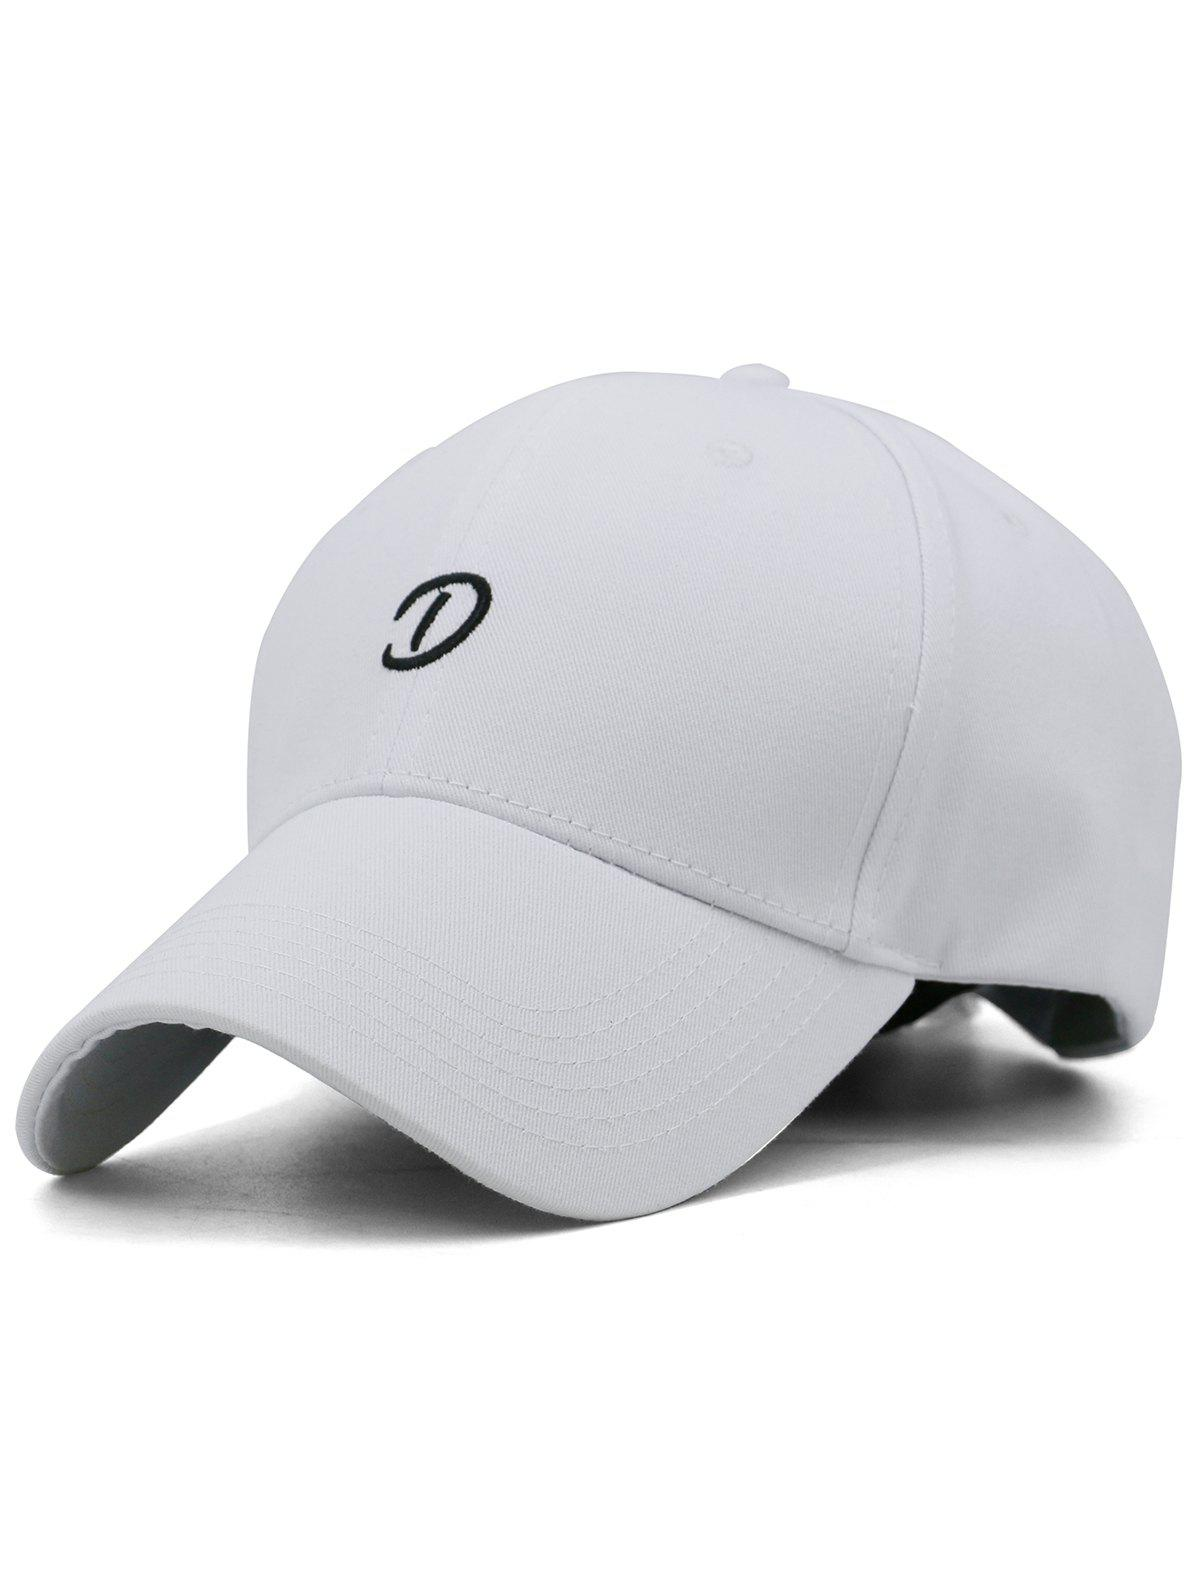 Letter D Embroidery Trucker Hat - WHITE